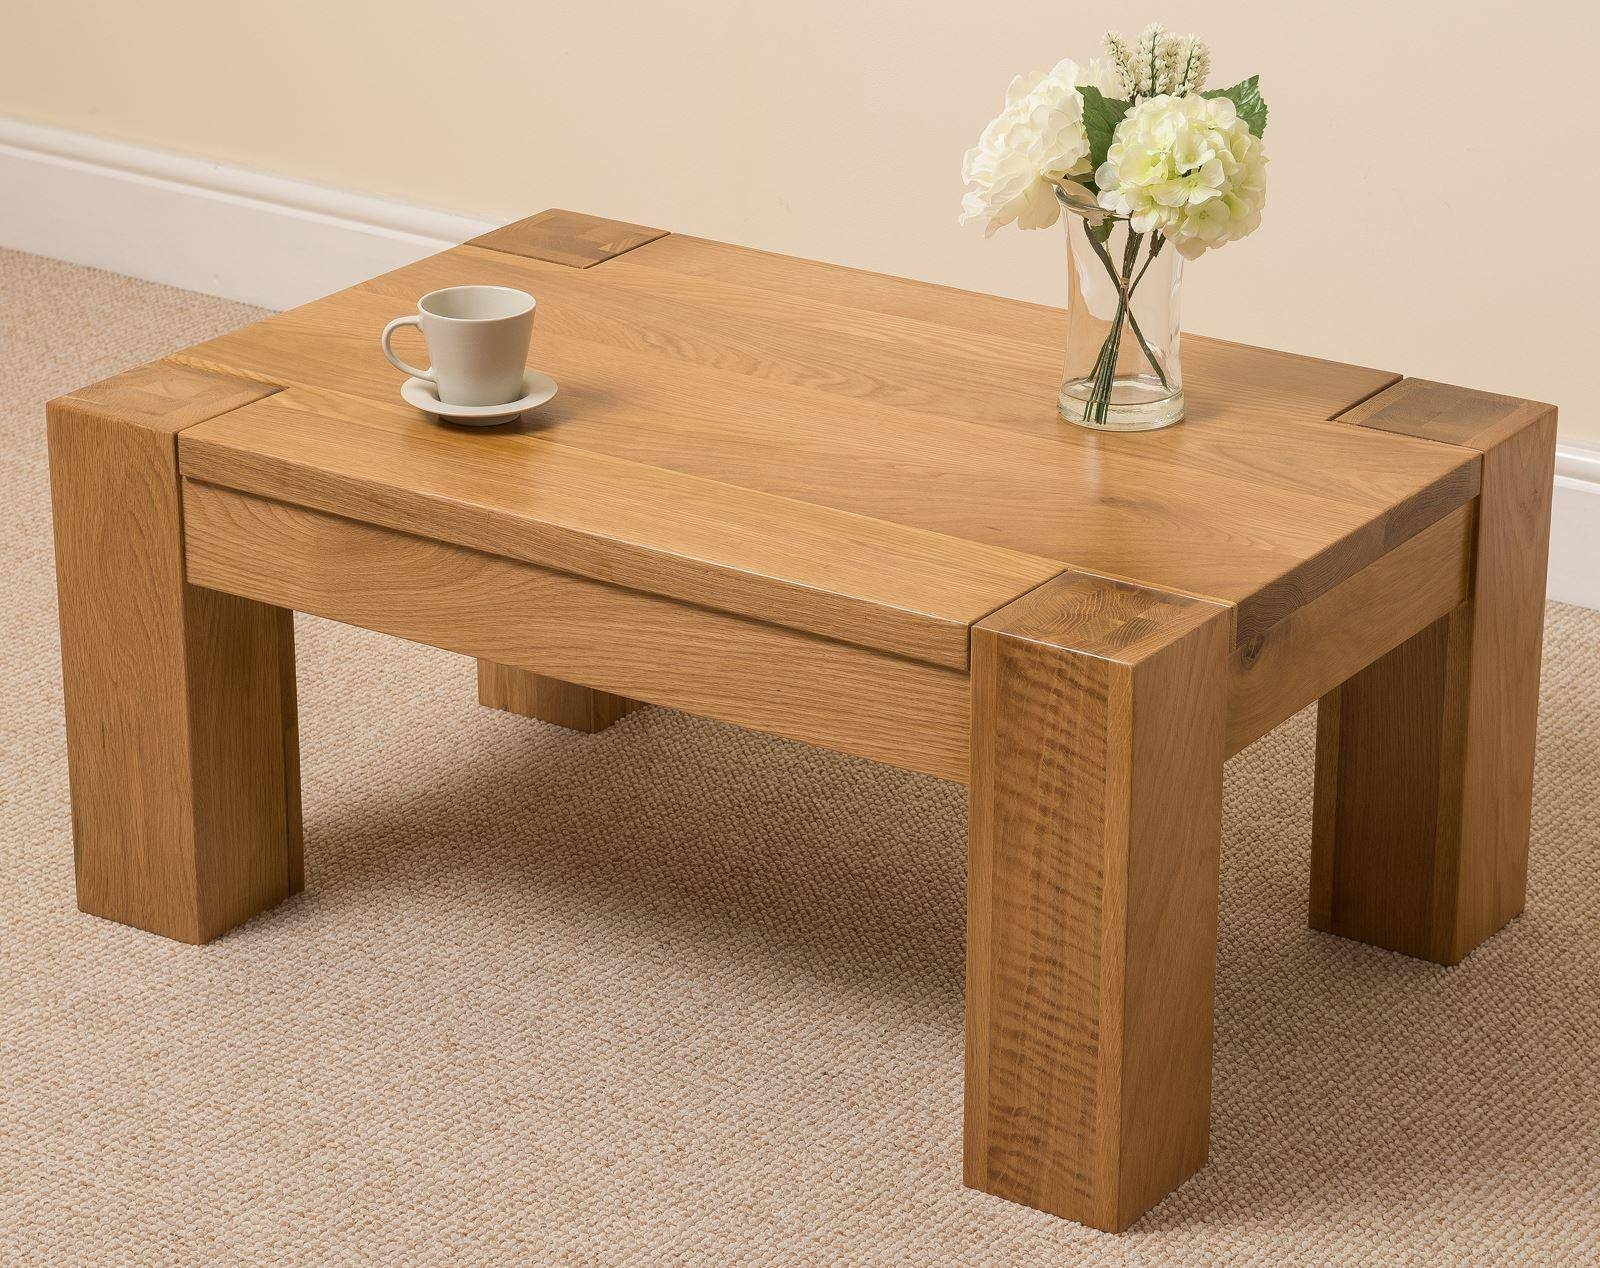 Top 30 of chunky oak coffee tables kuba solid oak coffee table oak furniture king pertaining to chunky oak coffee tables geotapseo Choice Image